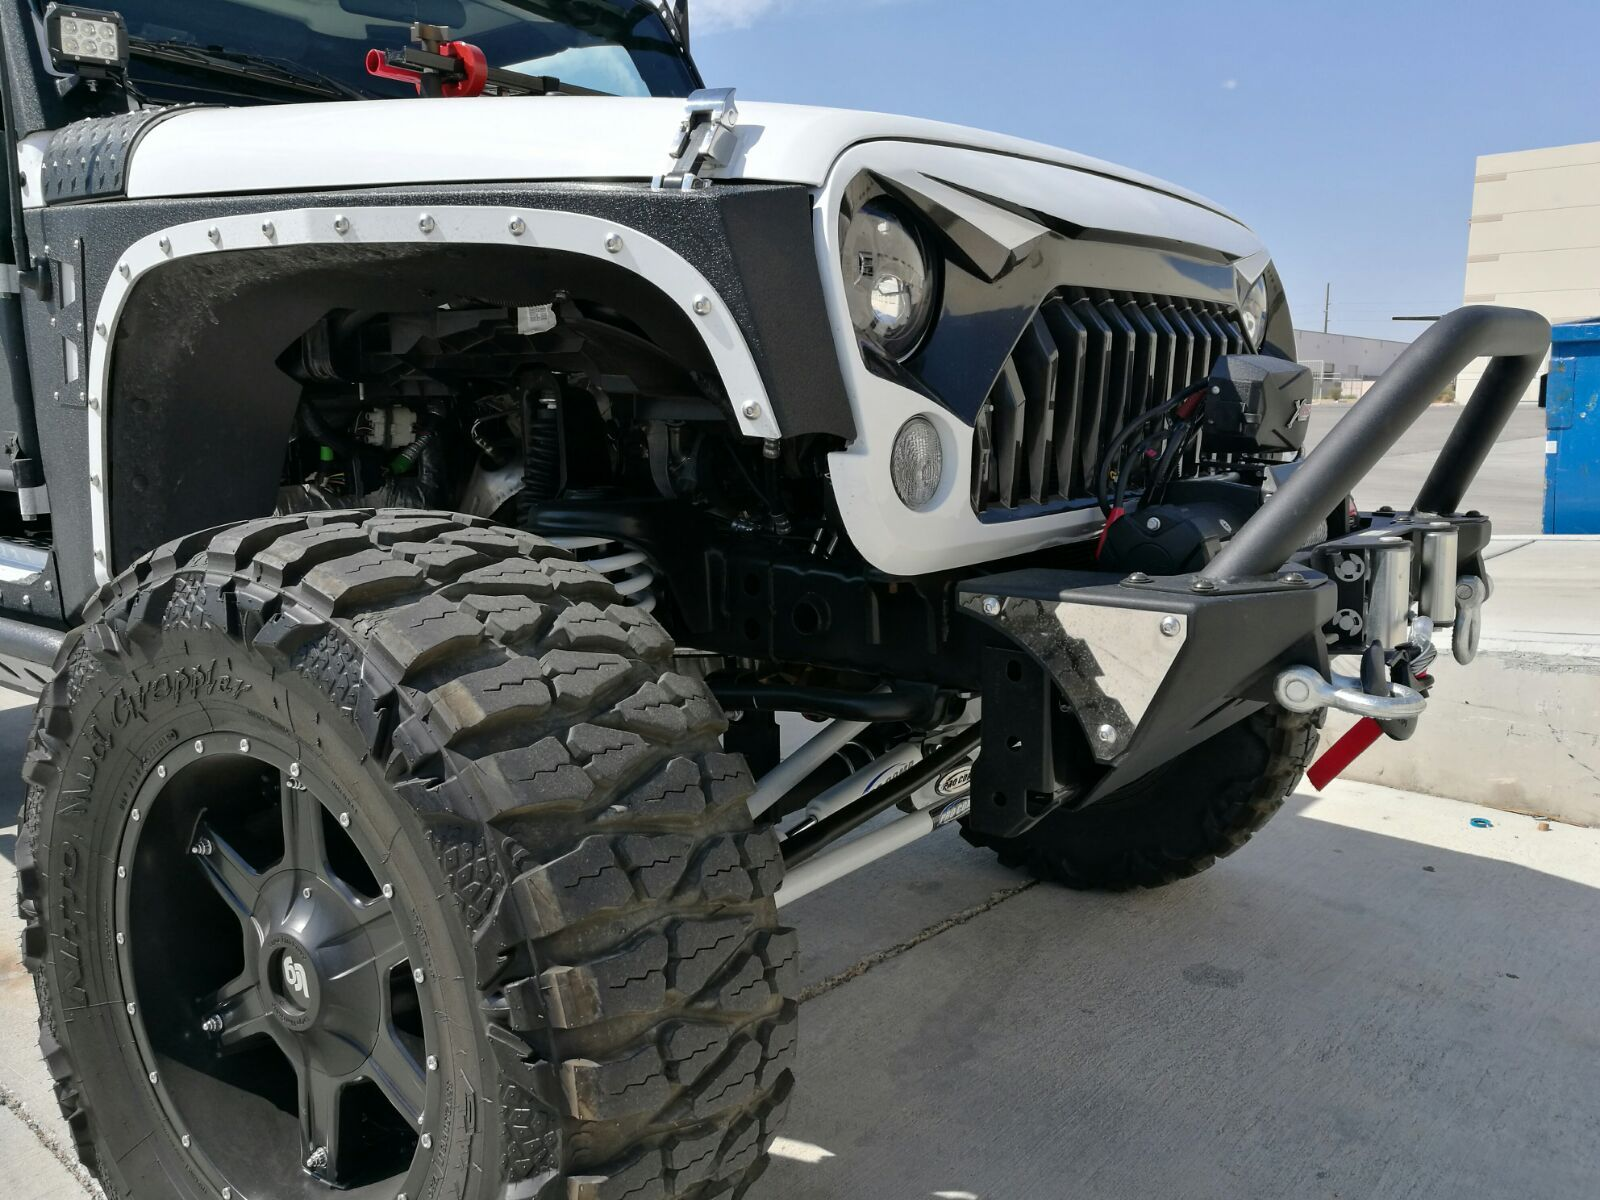 This Decked Out Jk Has It All Including The Gladiator Grille